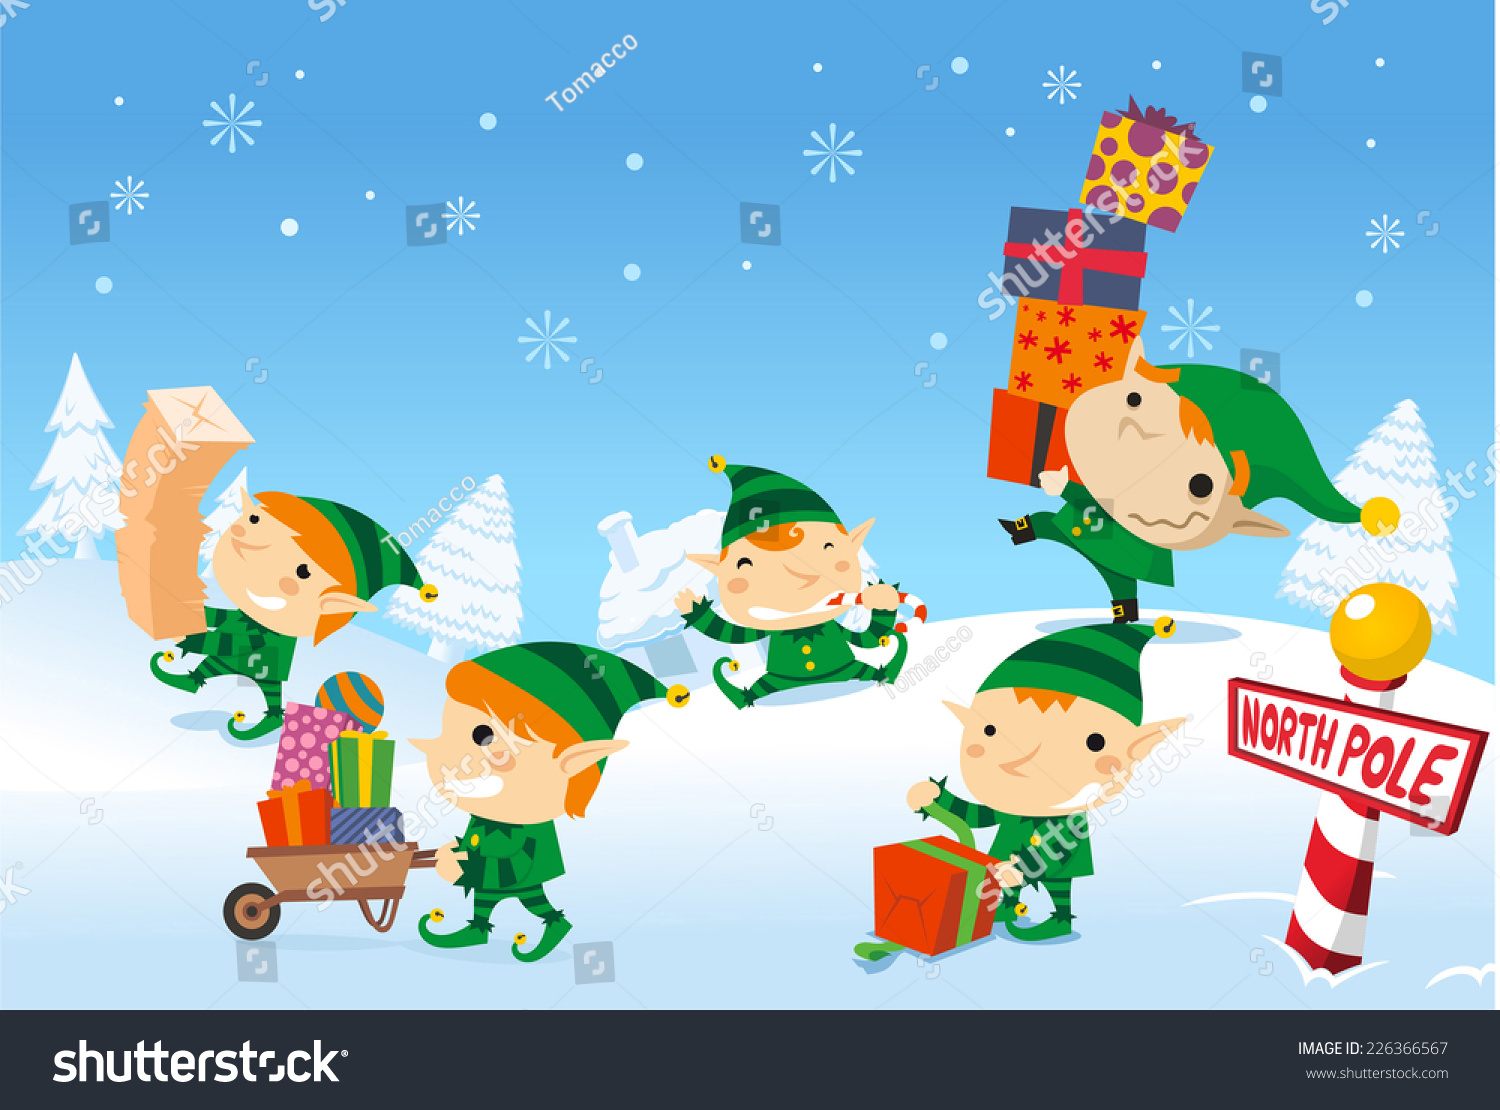 santas elves working at the north pole carrying santa claus presents for the children - Santa And The North Pole